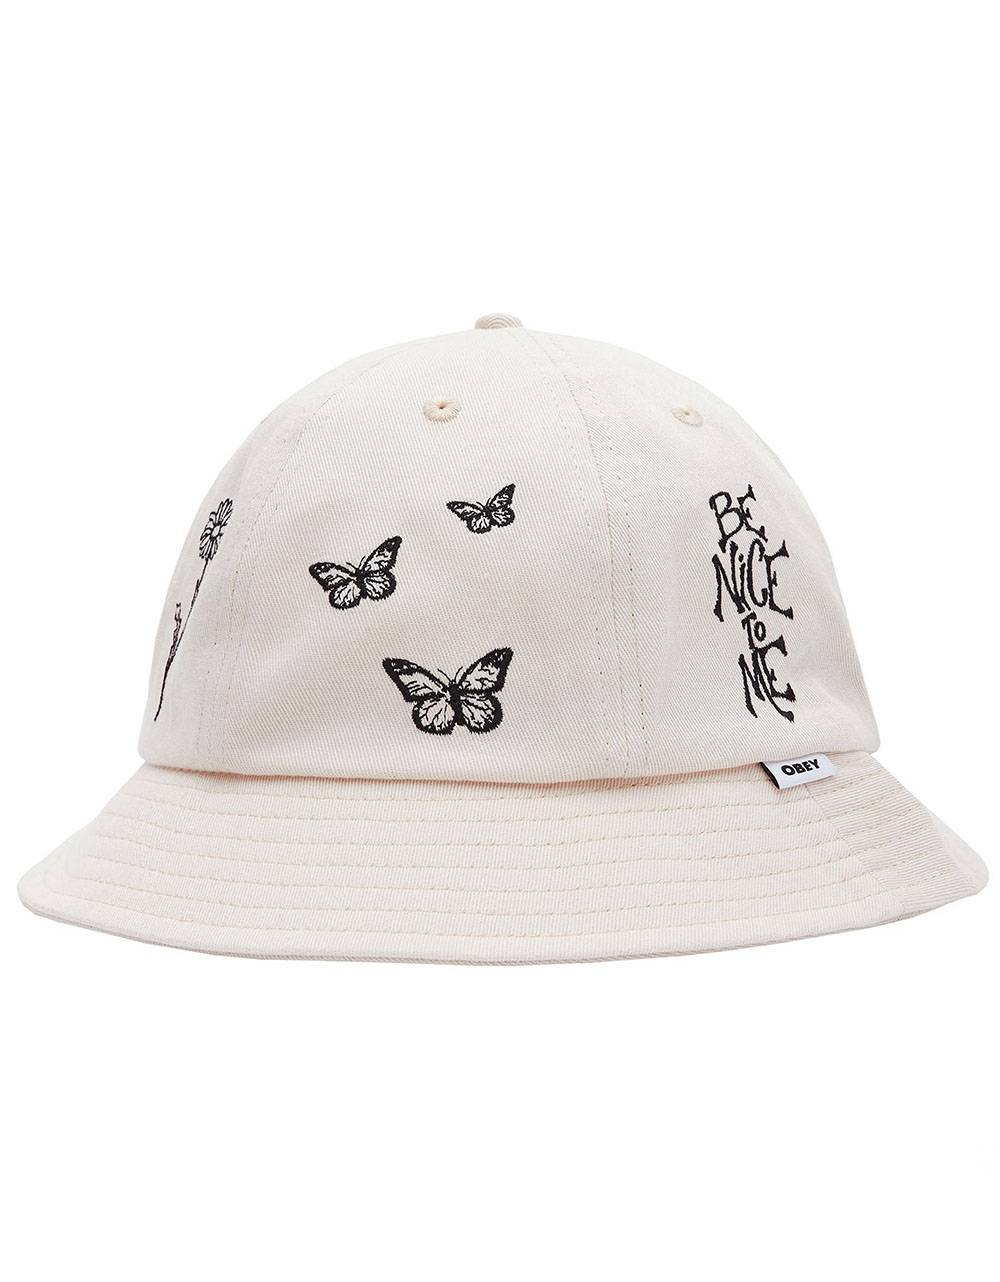 Obey Woman Printed 6 panel bucket hat - sago obey Hat 50,00€